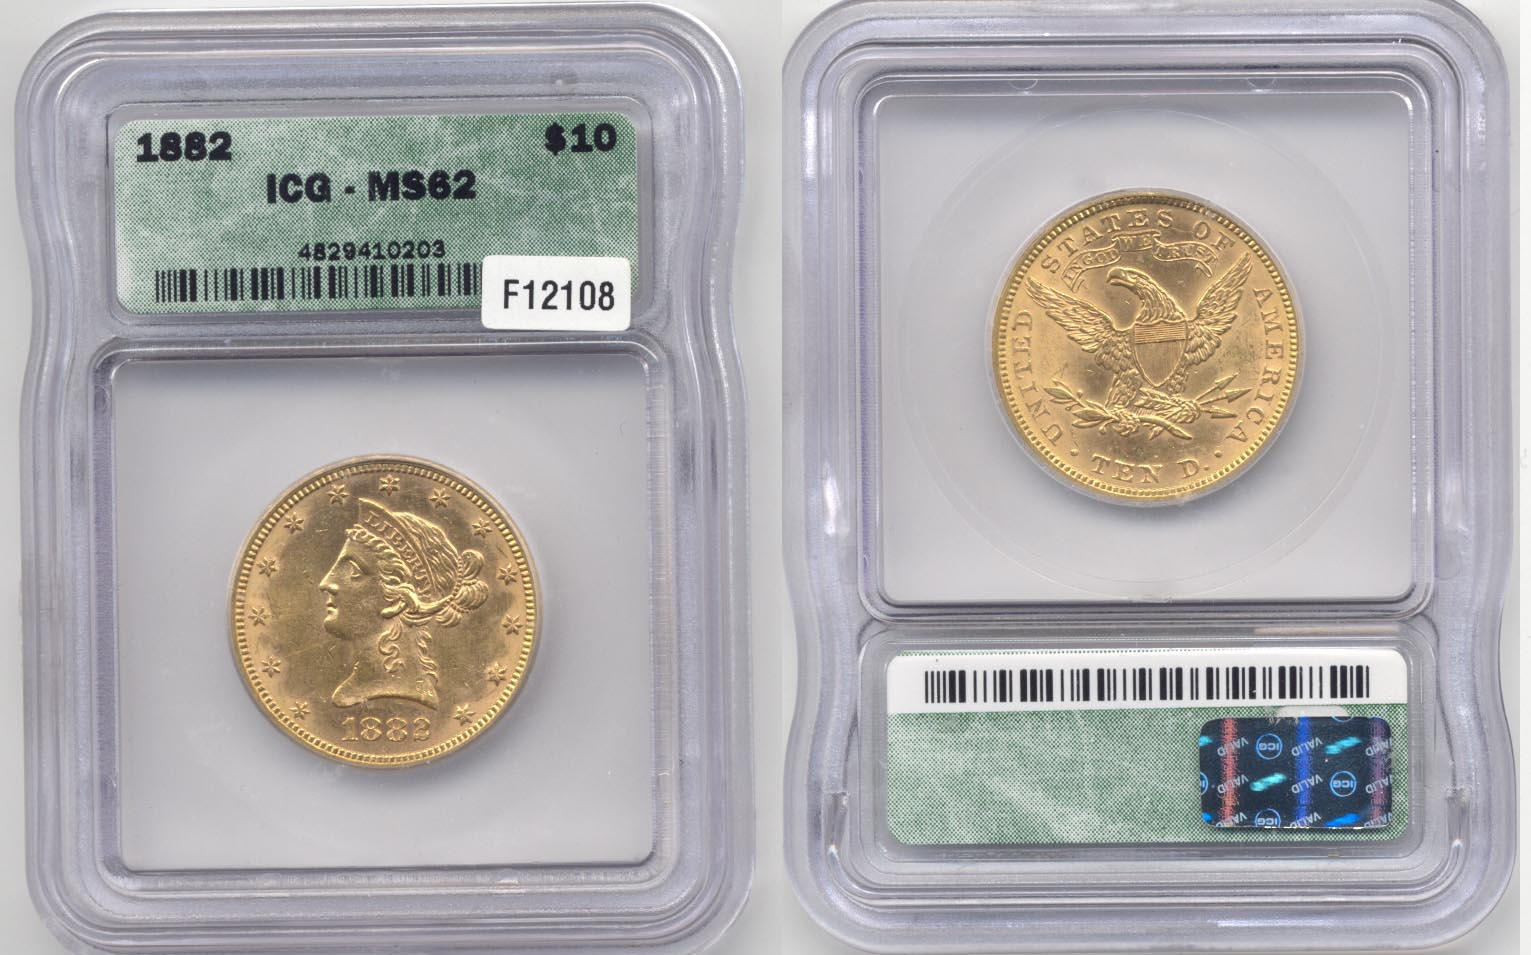 1882 Gold $10.00 Eagle ICG MS-62